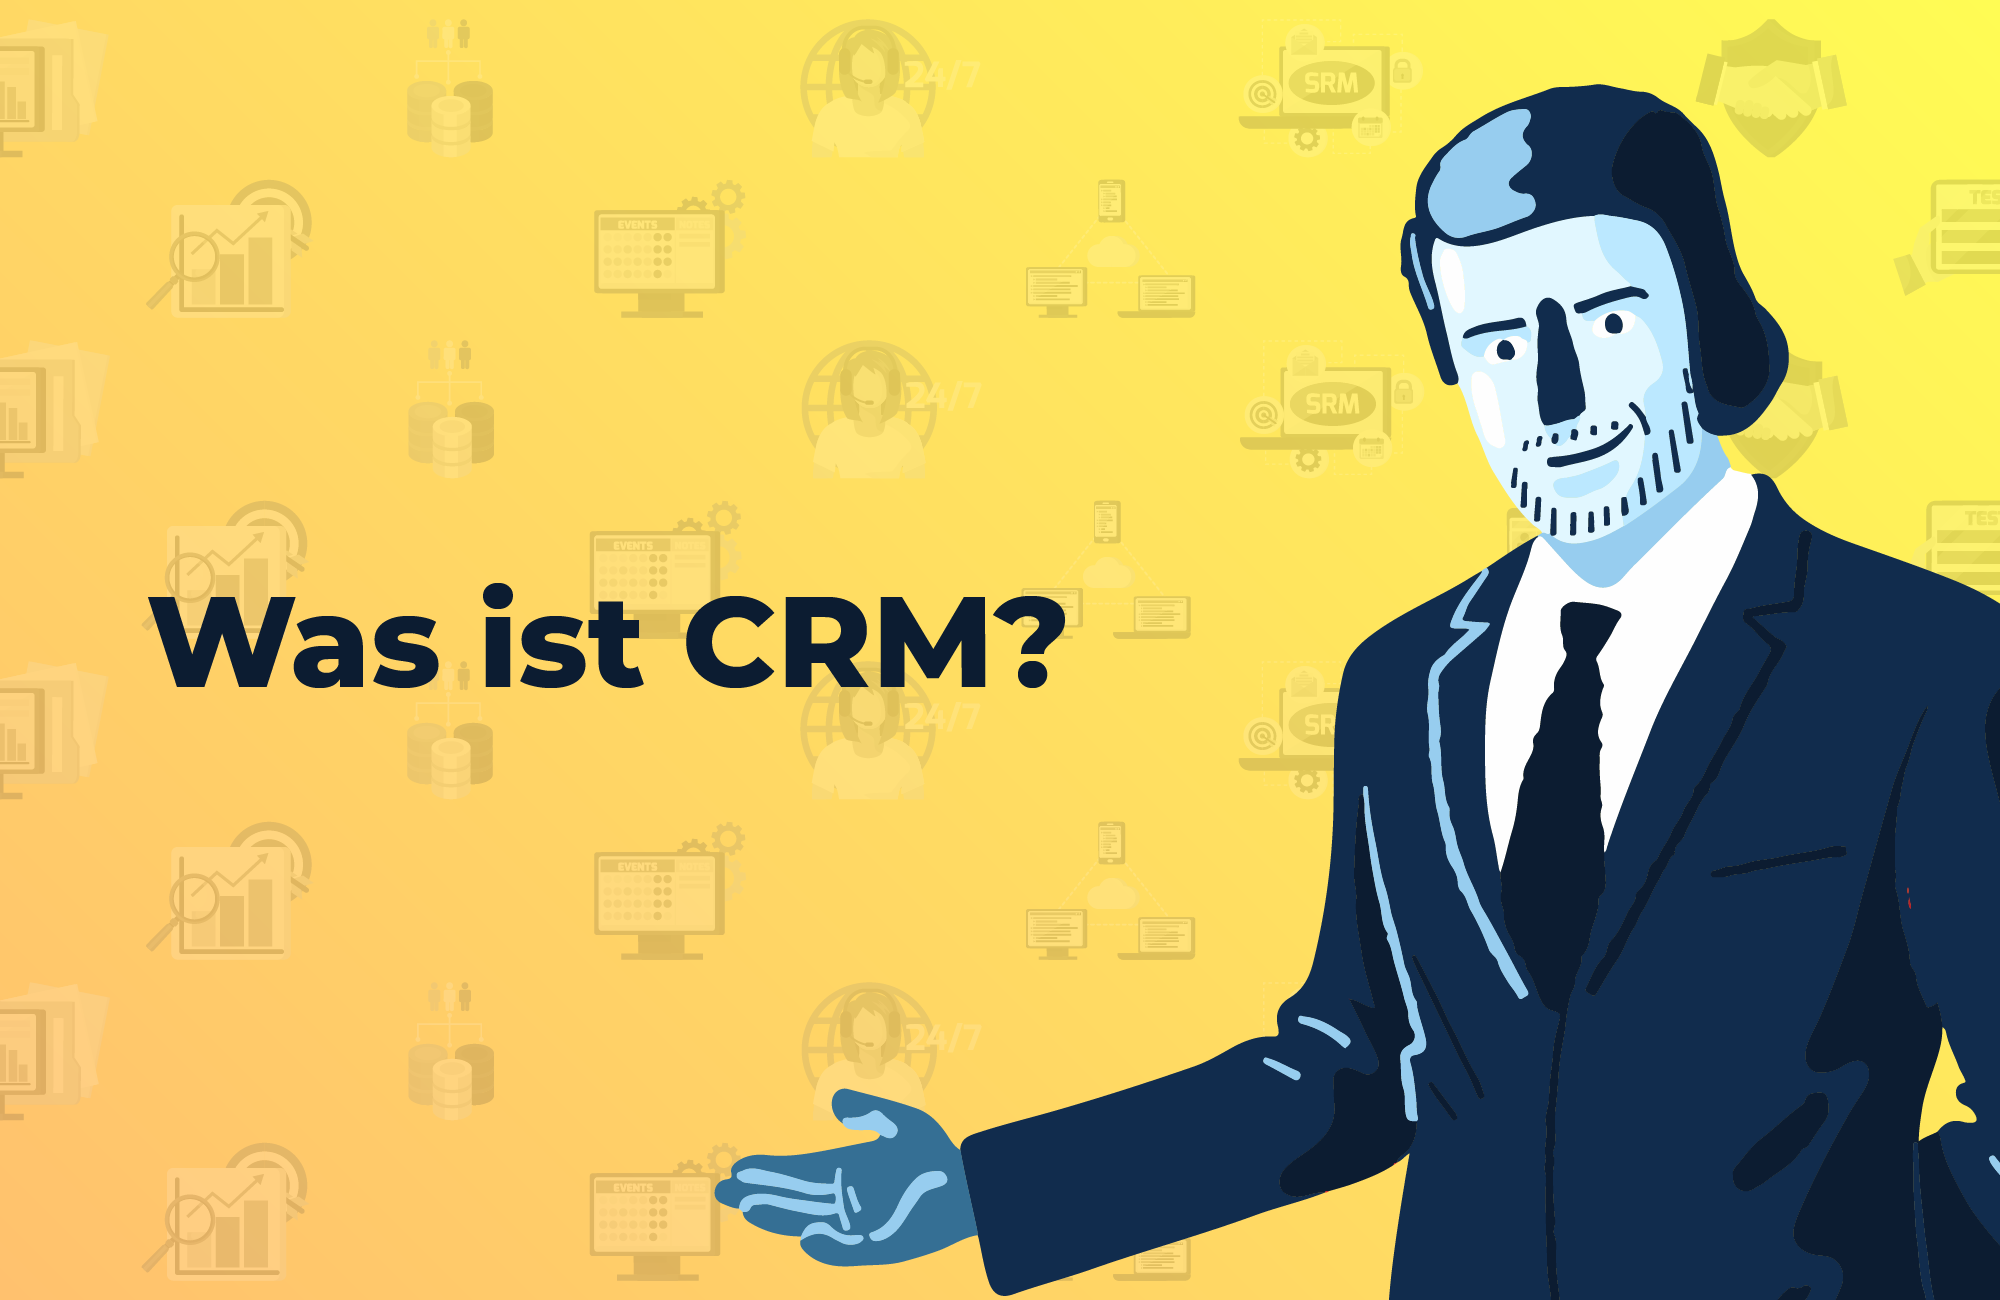 Was ist CRM (Customer-Relationship-Management)?